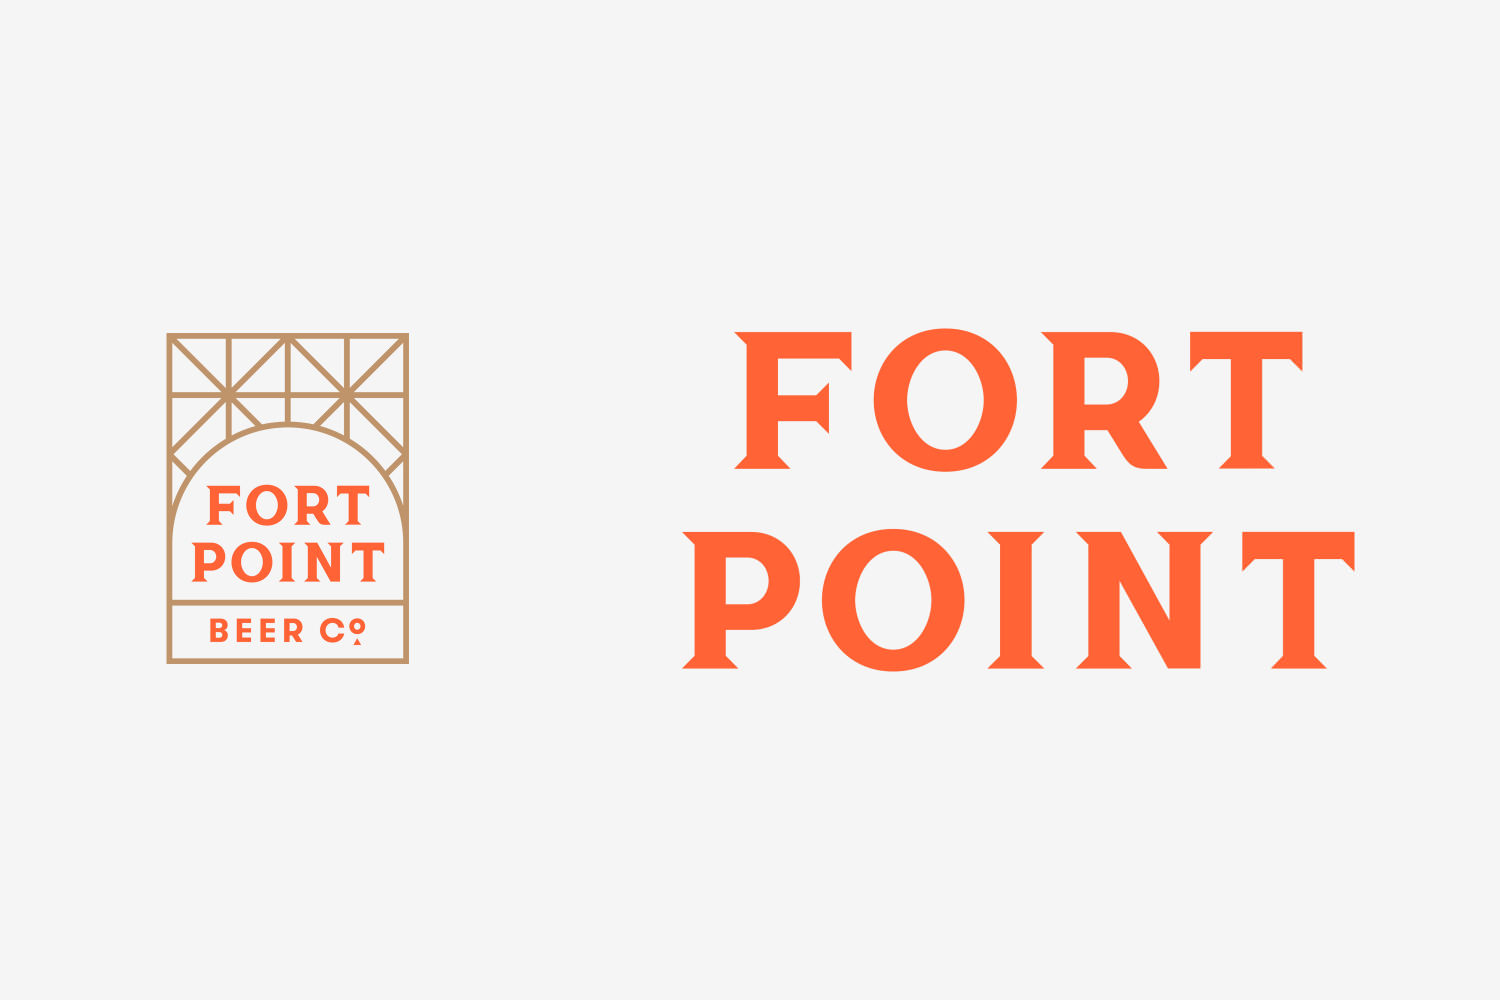 01-Fort-Point-Beer-Co-Branding-Packaging-Manual-BPO